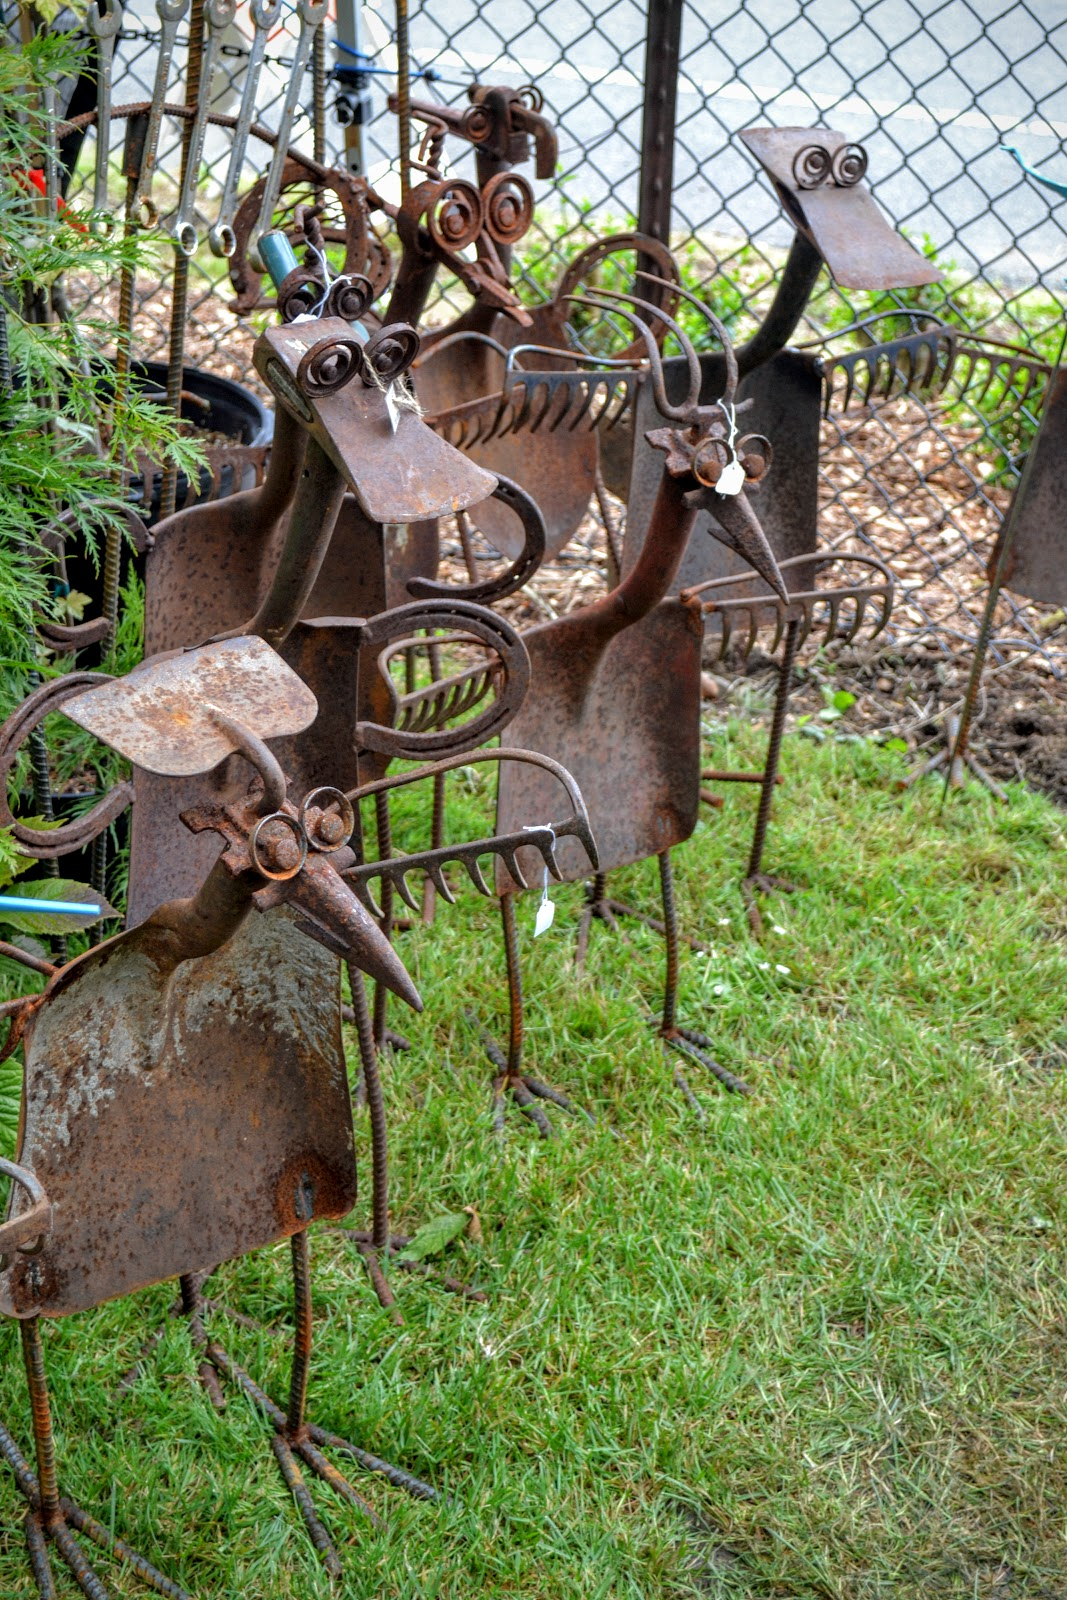 Kevin Crowder Is The Creative Mind Behind Rusty Stuff. Arenu0027t These Fun?